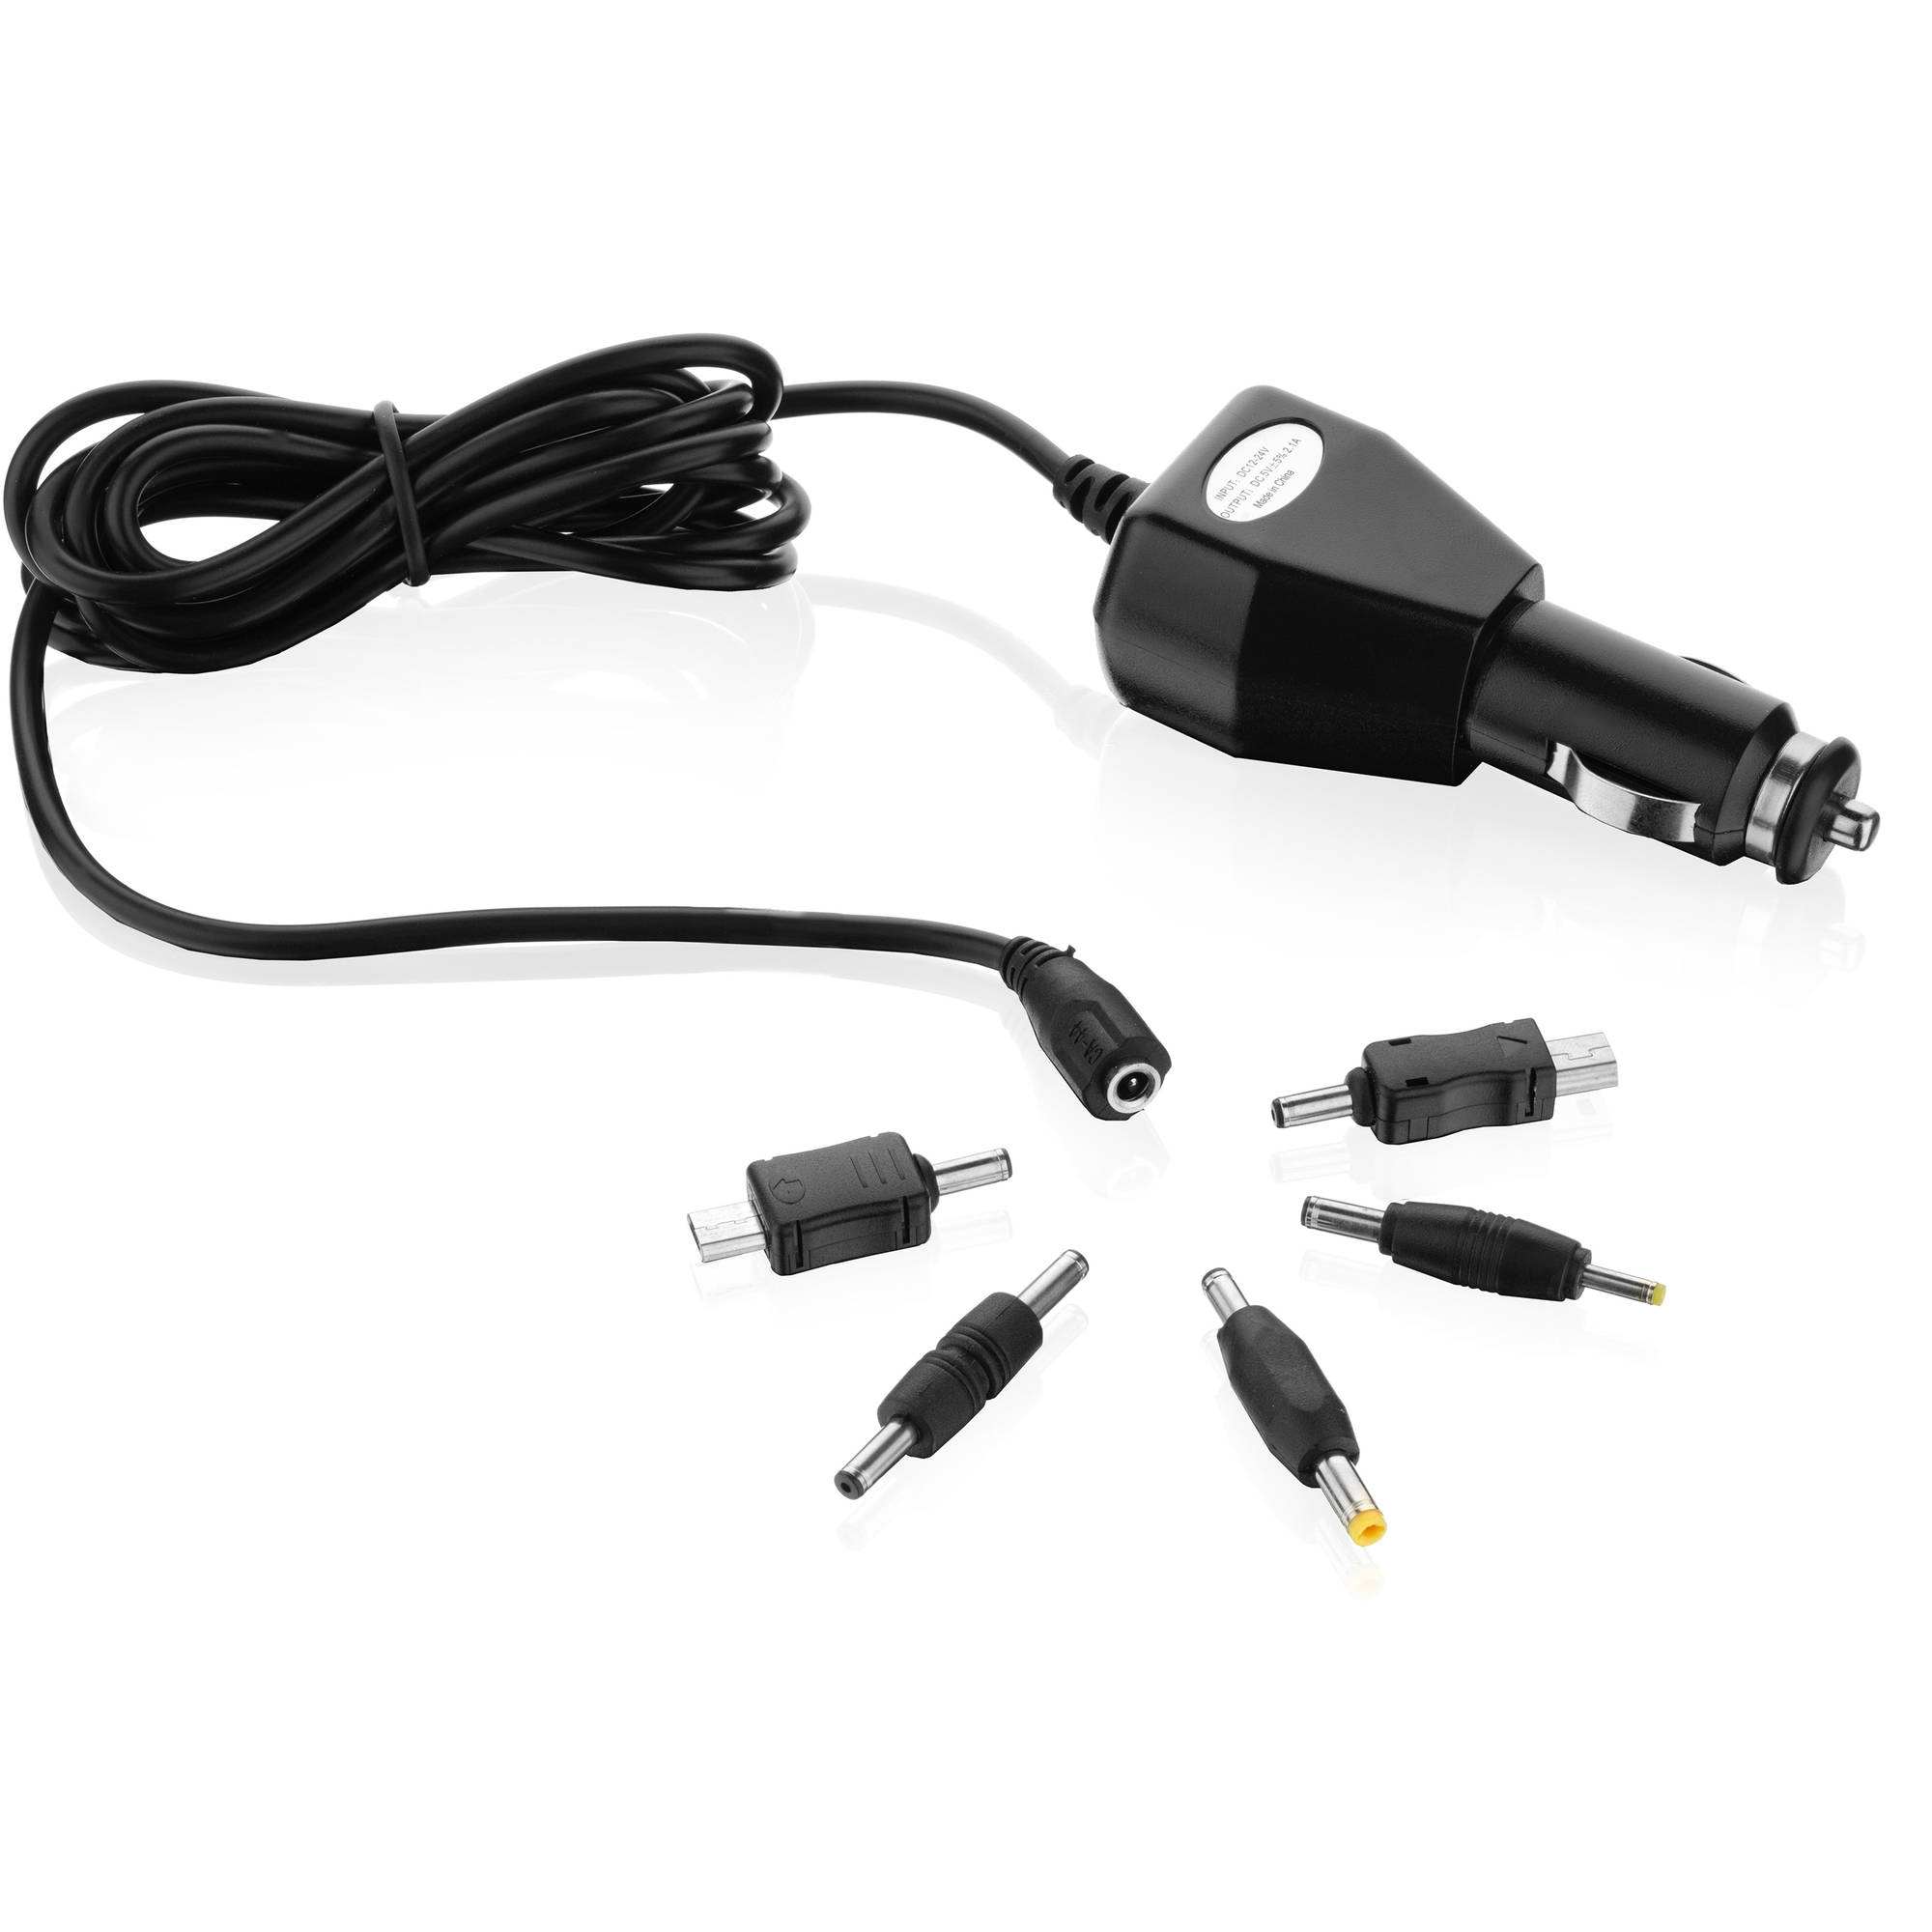 Bravo View CGR-1GPS – 2.1-amp Universal GPS Car Charger